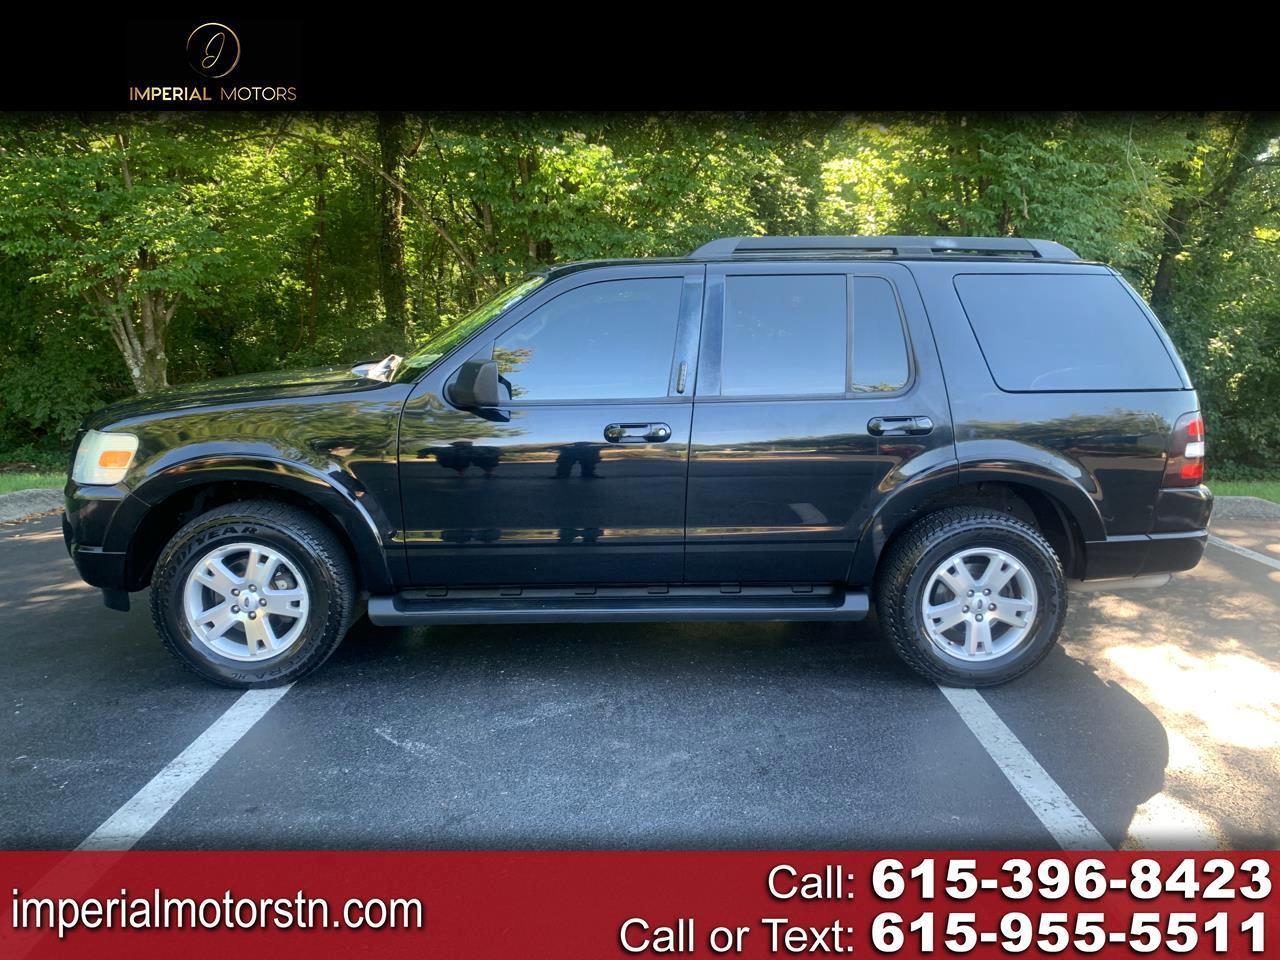 Ford Explorer XLT 4.0L 2WD 2009